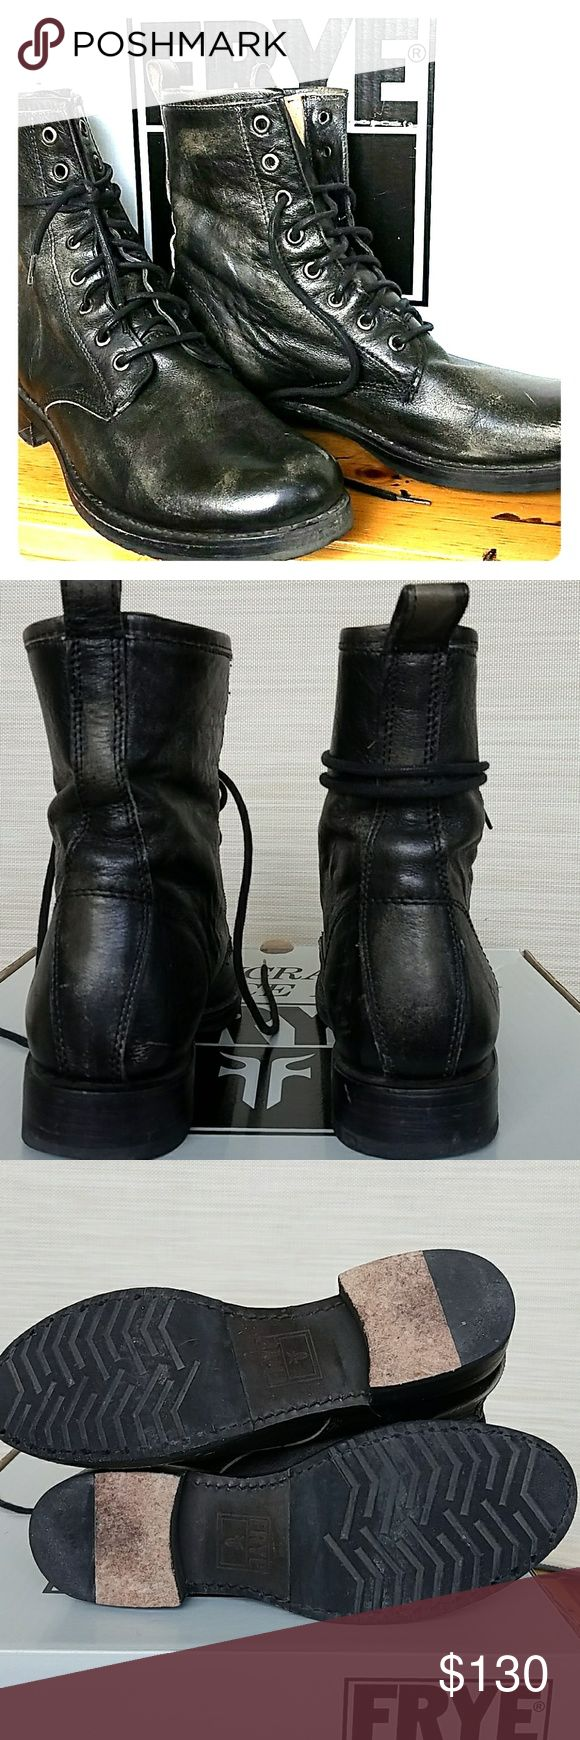 FRYE Veronica Combat Boots FRYE Veronica Combat Boots Black Leather Burnished Finish.  Gently  worn just a few times. Heels & leather soles great shape.  No scuffs or scratches or tears.  Leather has burnished/distressed finish. Frye Shoes Combat & Moto Boots